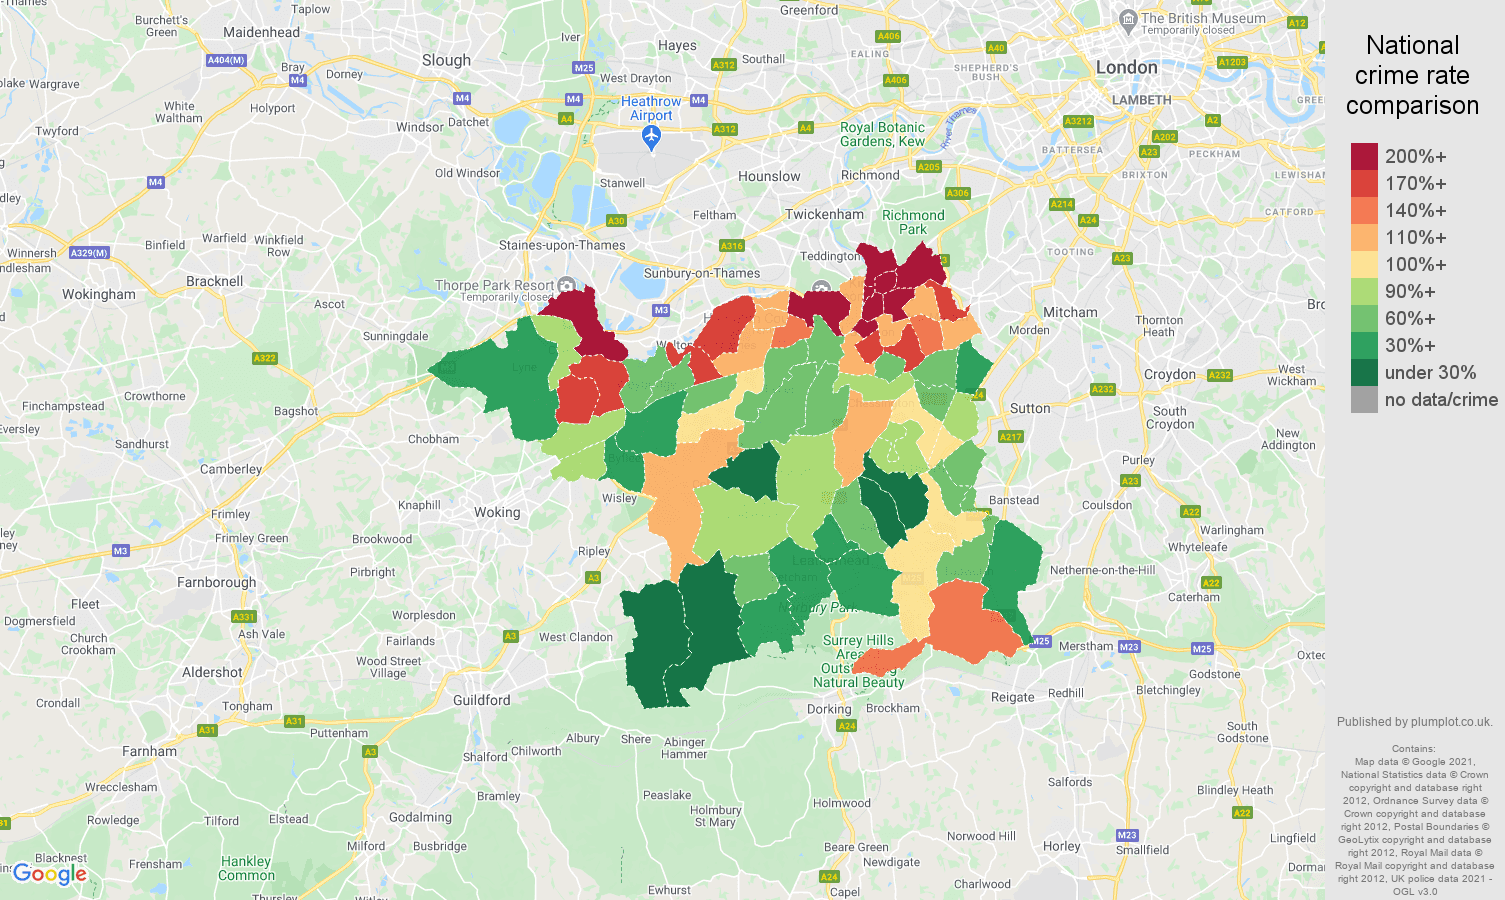 Kingston upon Thames drugs crime rate comparison map